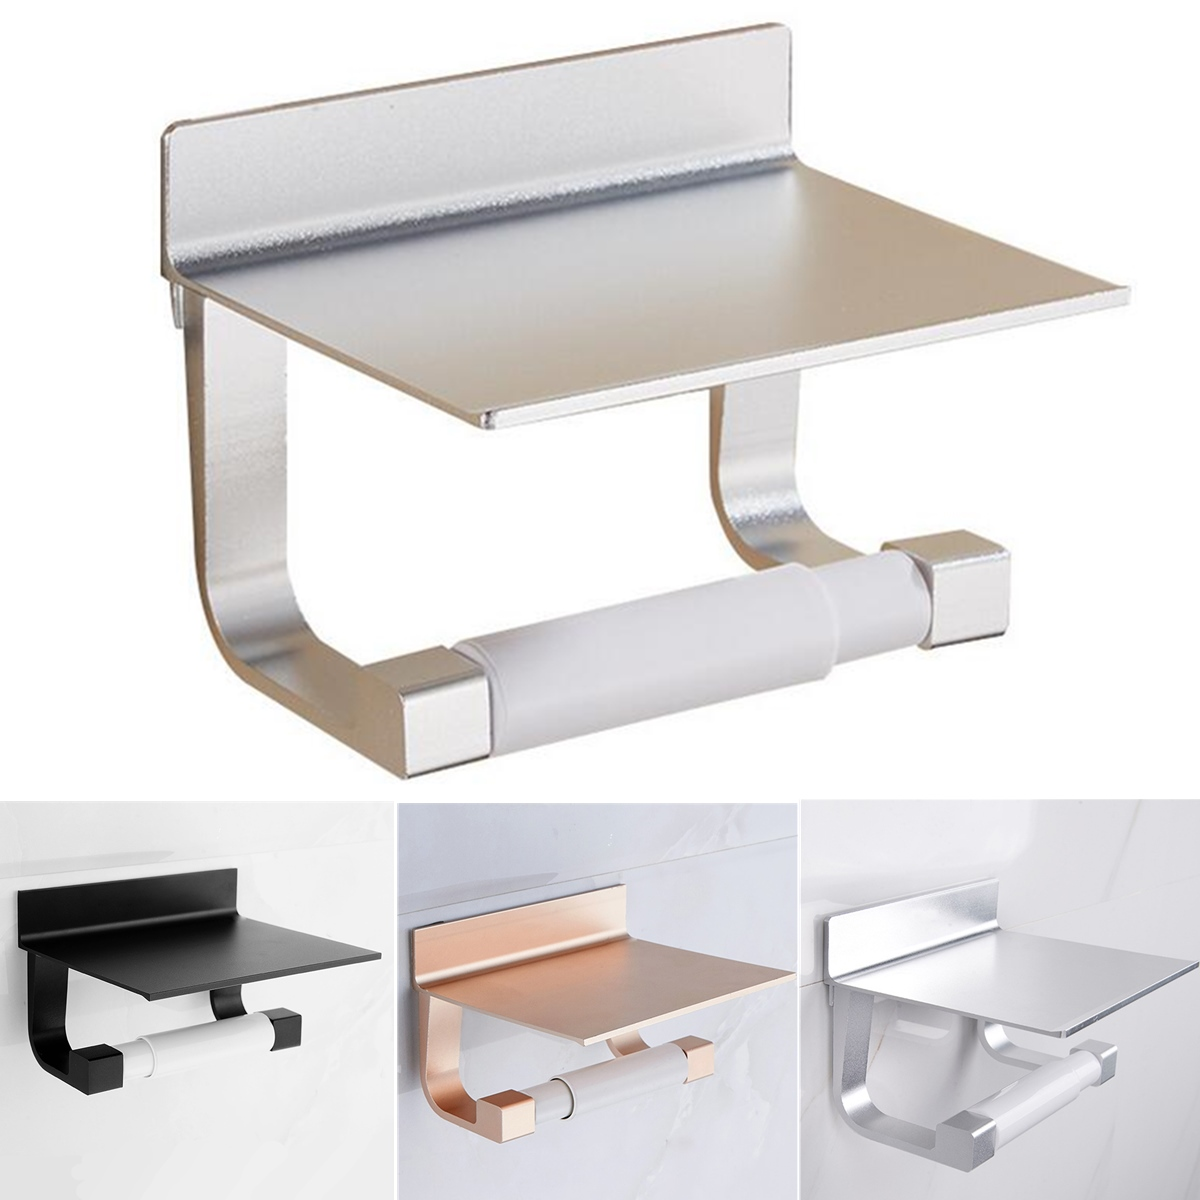 Toilet Paper Holders Space Aluminum Multi-function Storage Holder Bathroom Towel Shelf  Holder Free Punching